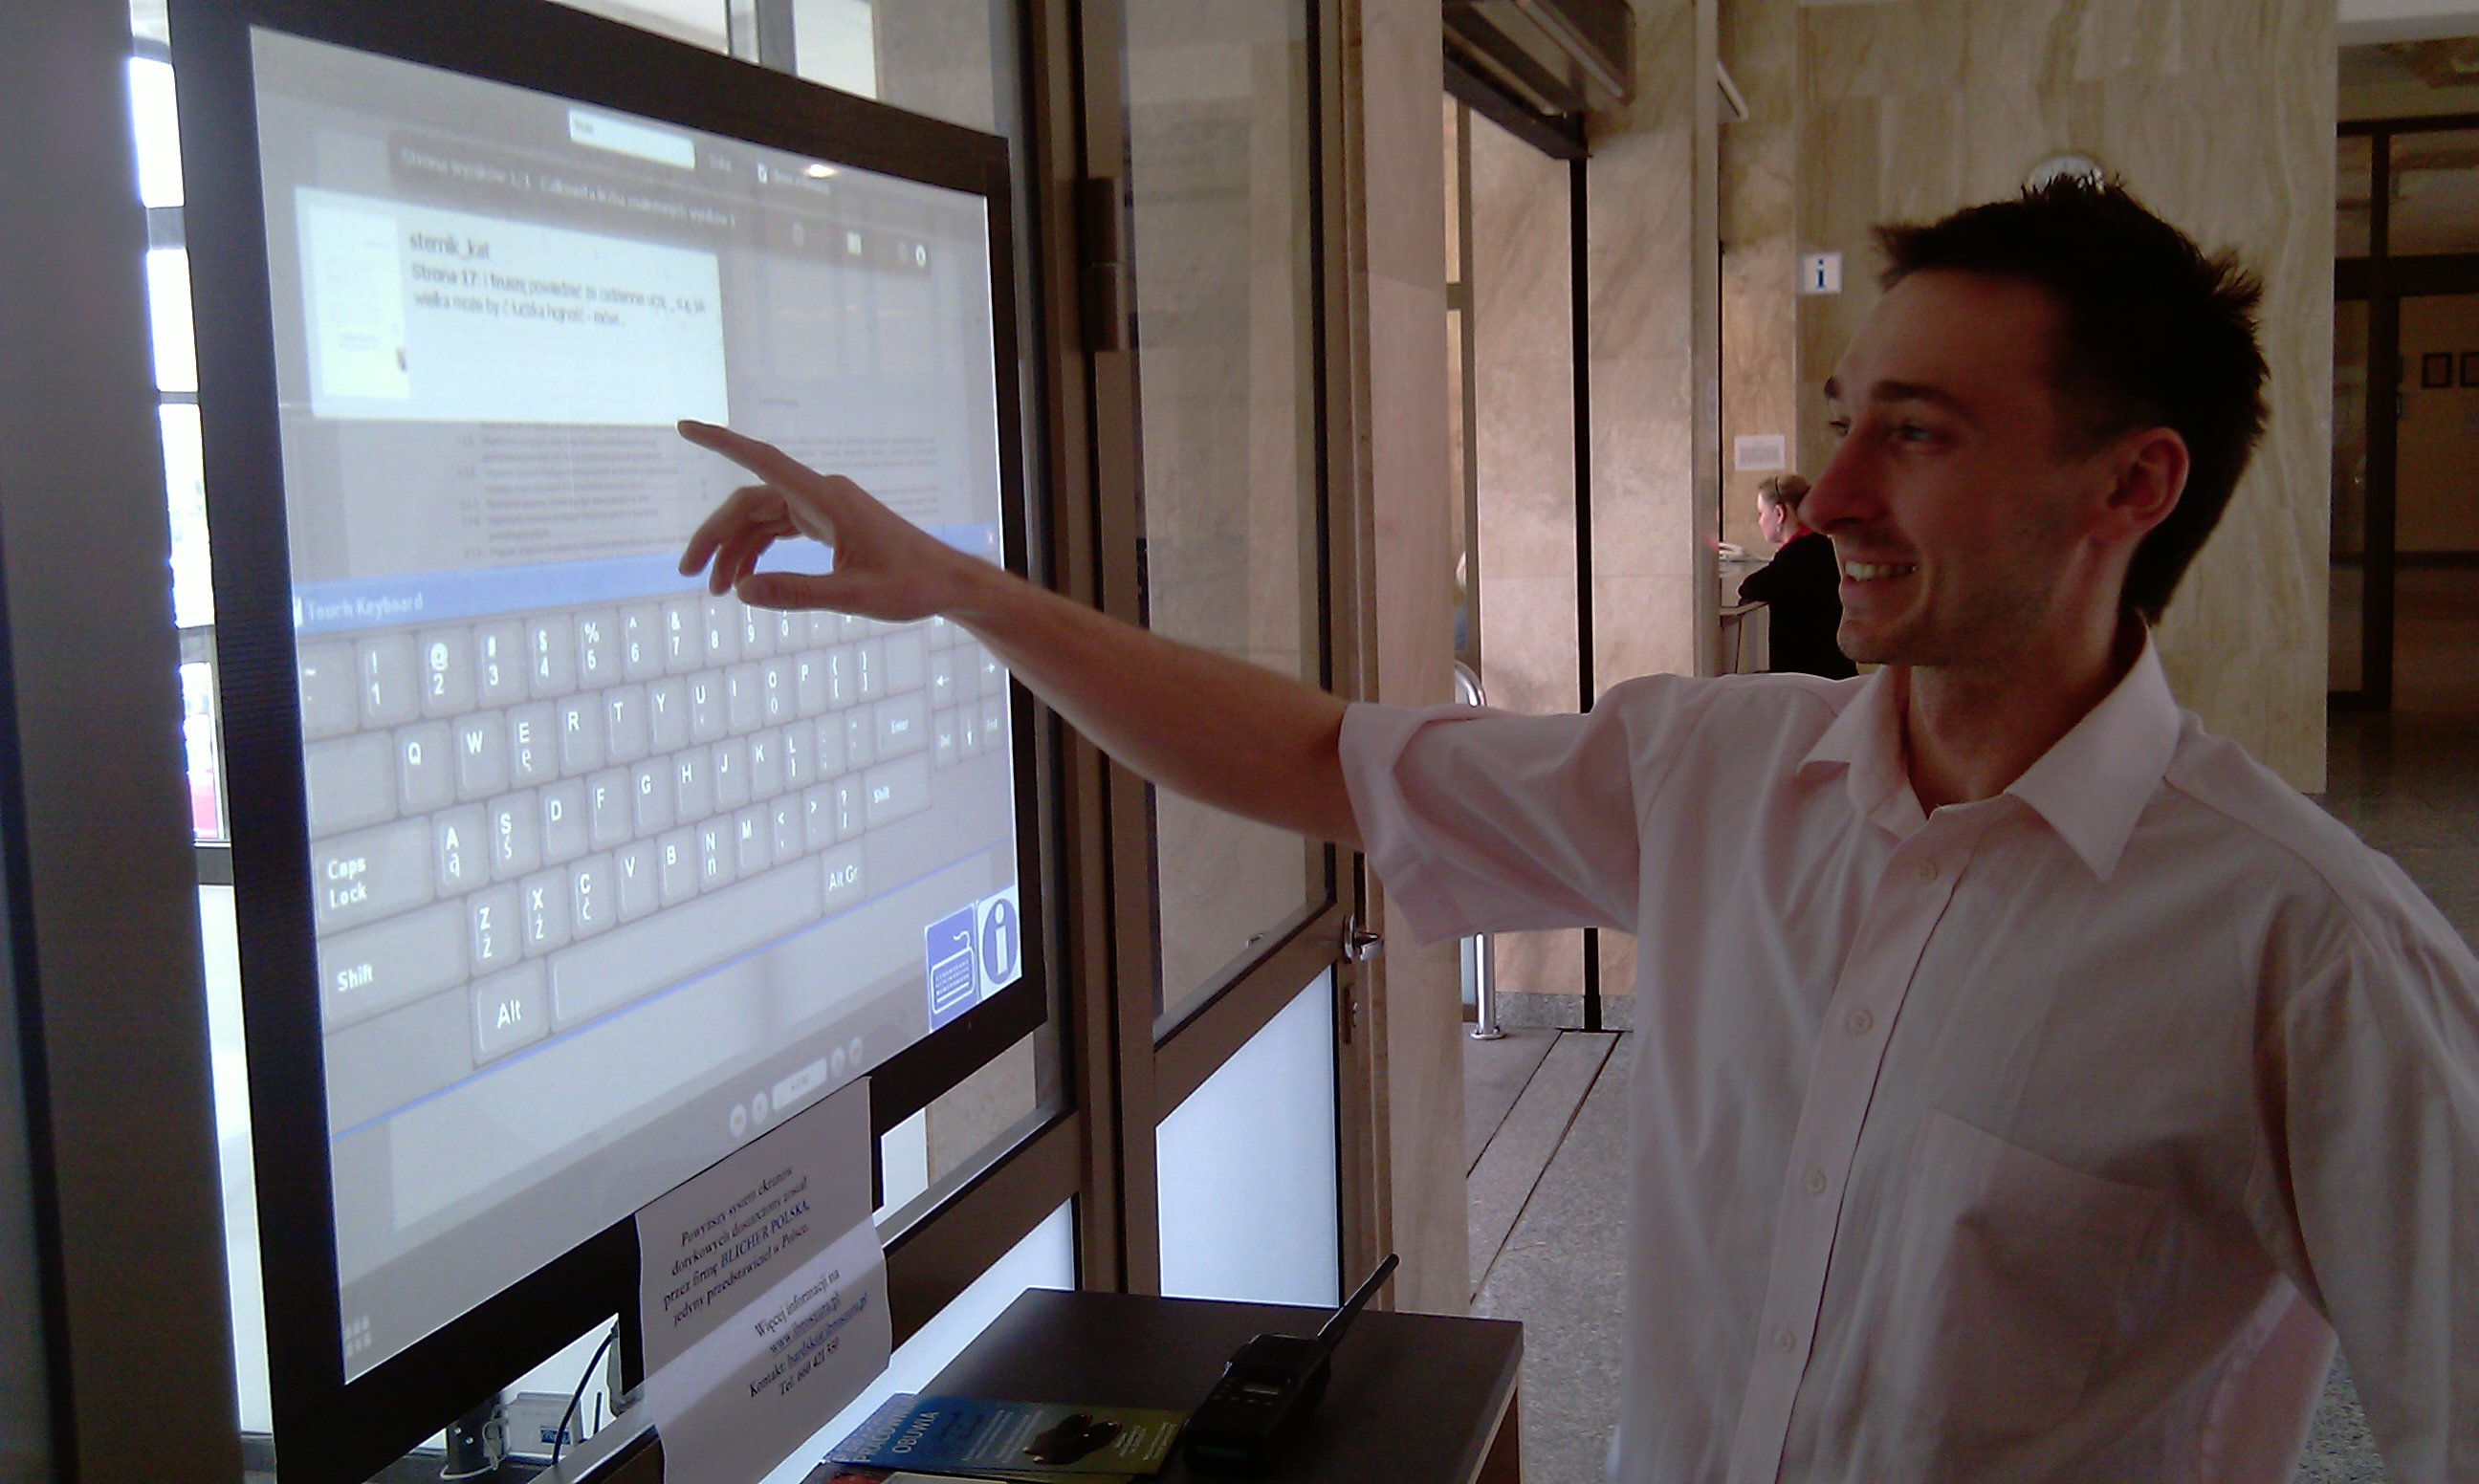 Interactive Touch Window